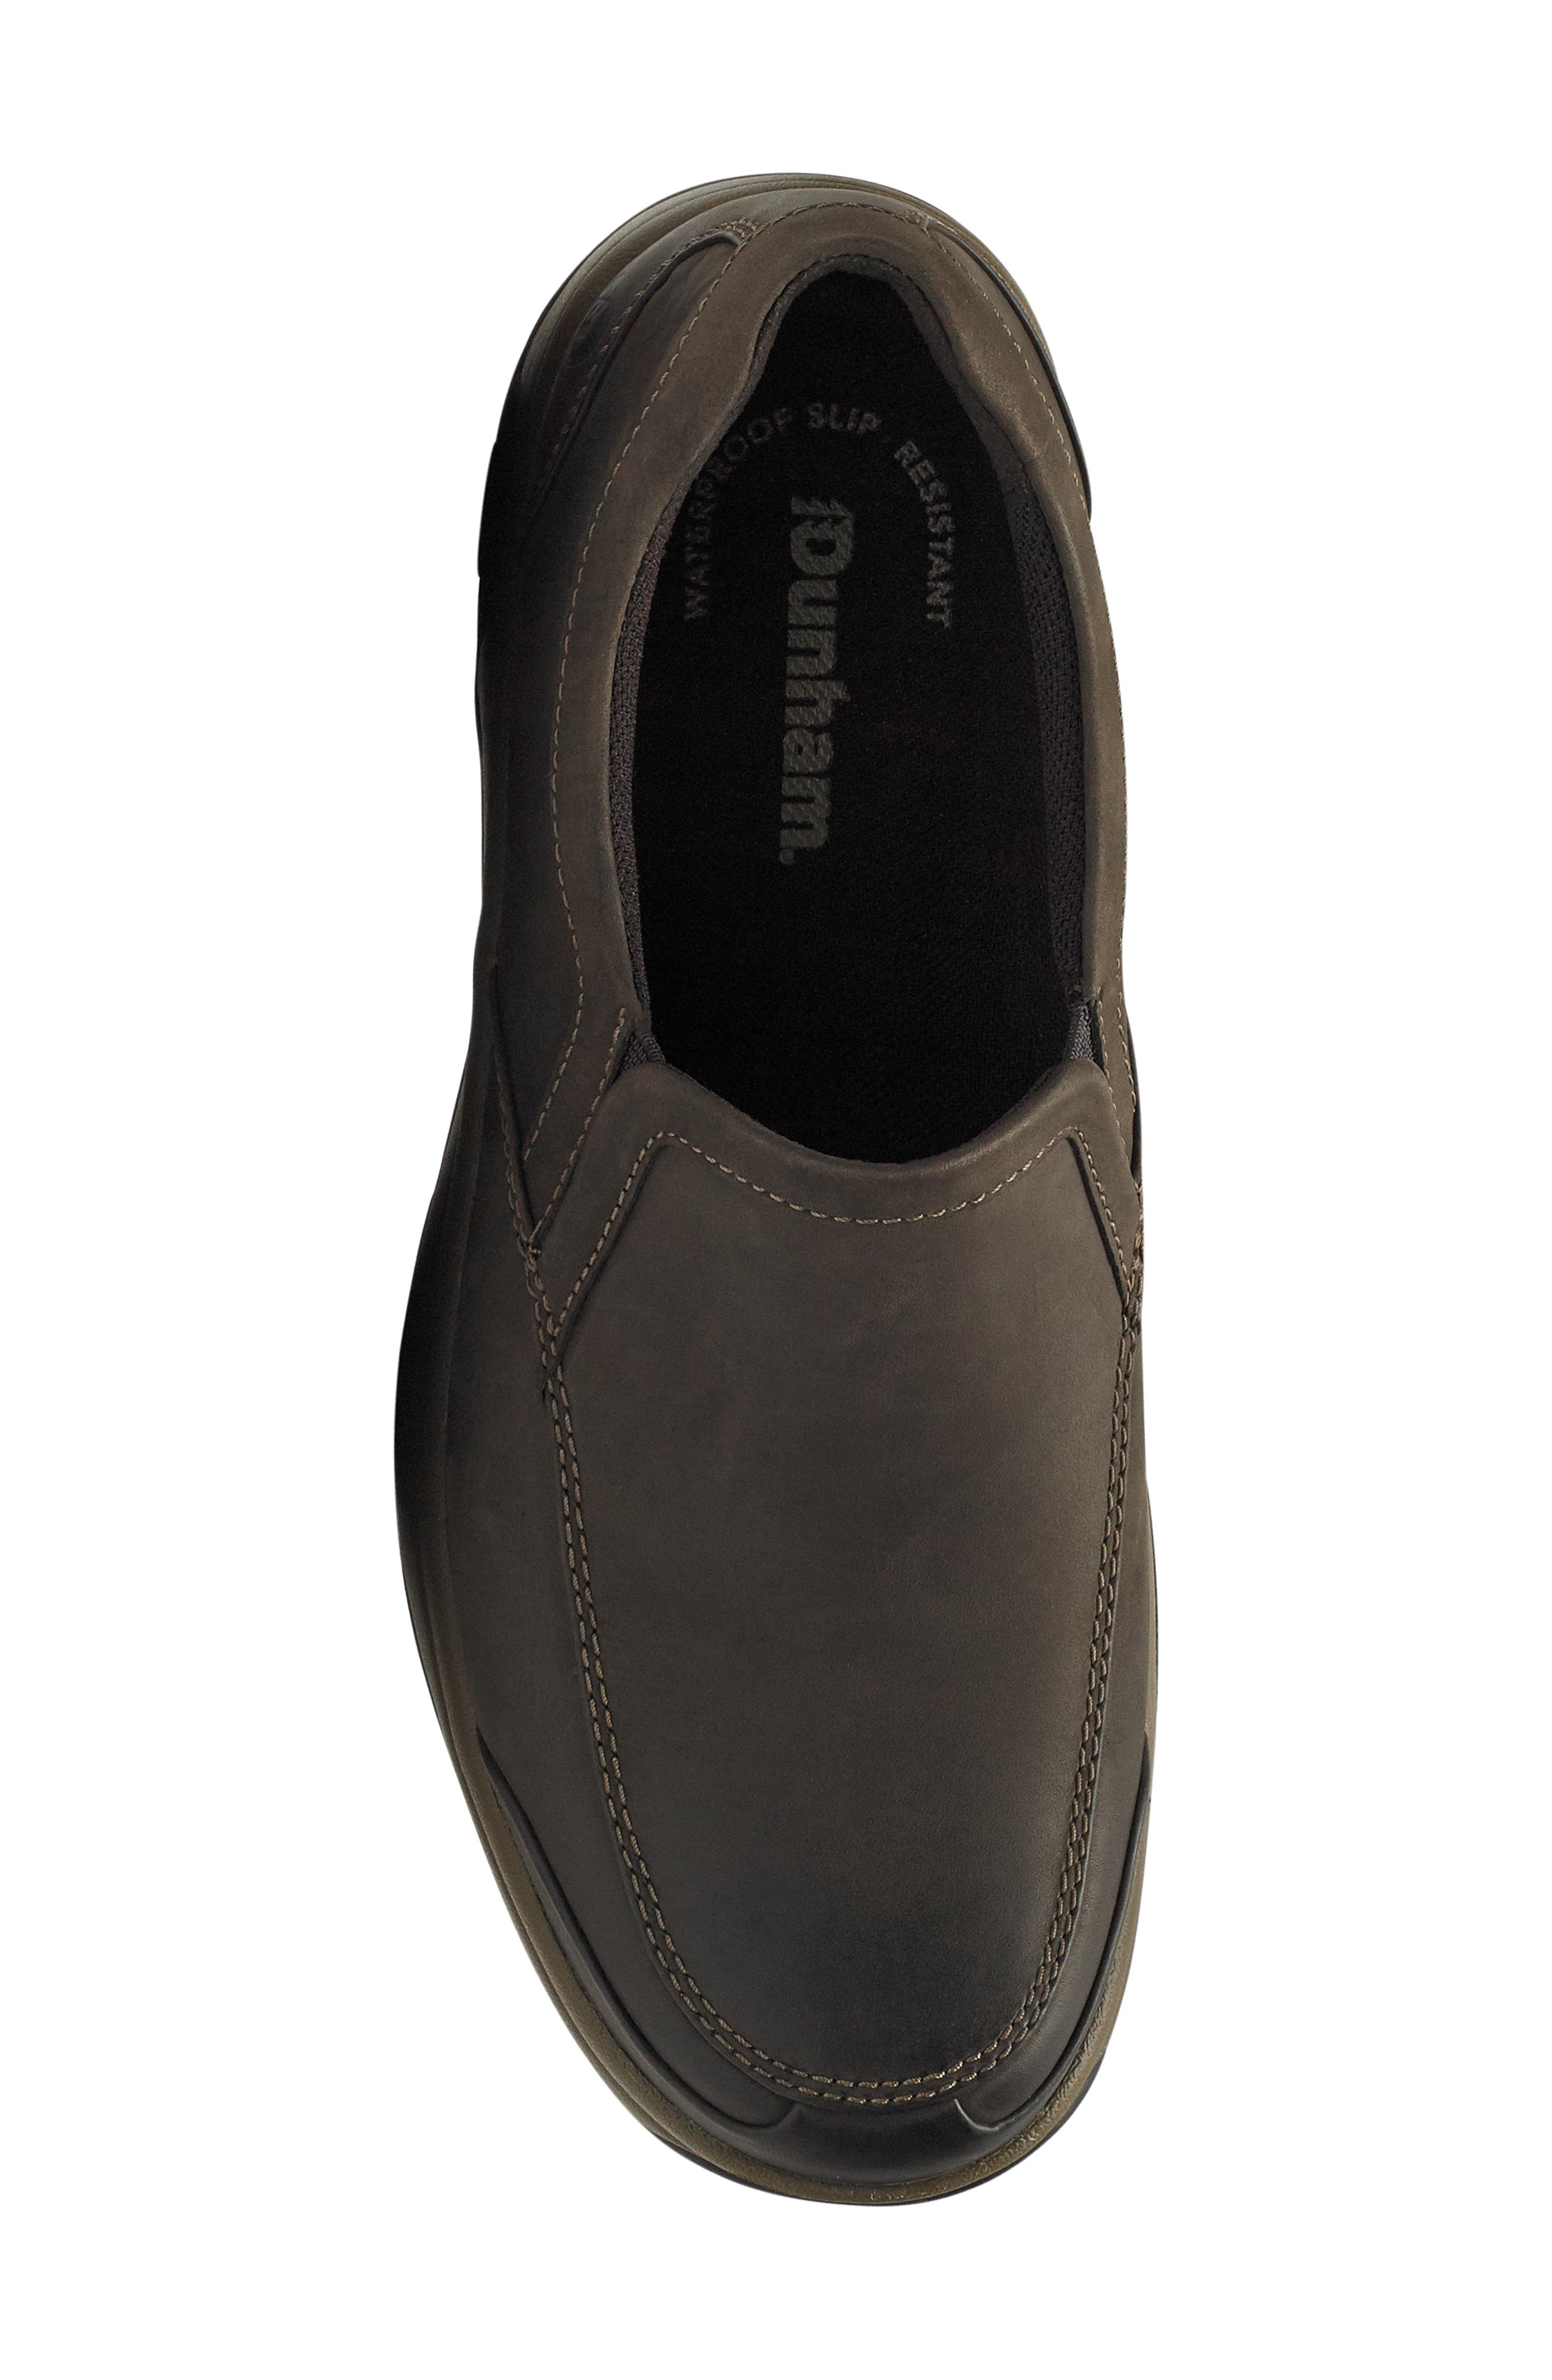 Battery Park Waterproof Slip-On,                             Alternate thumbnail 5, color,                             BROWN LEATHER